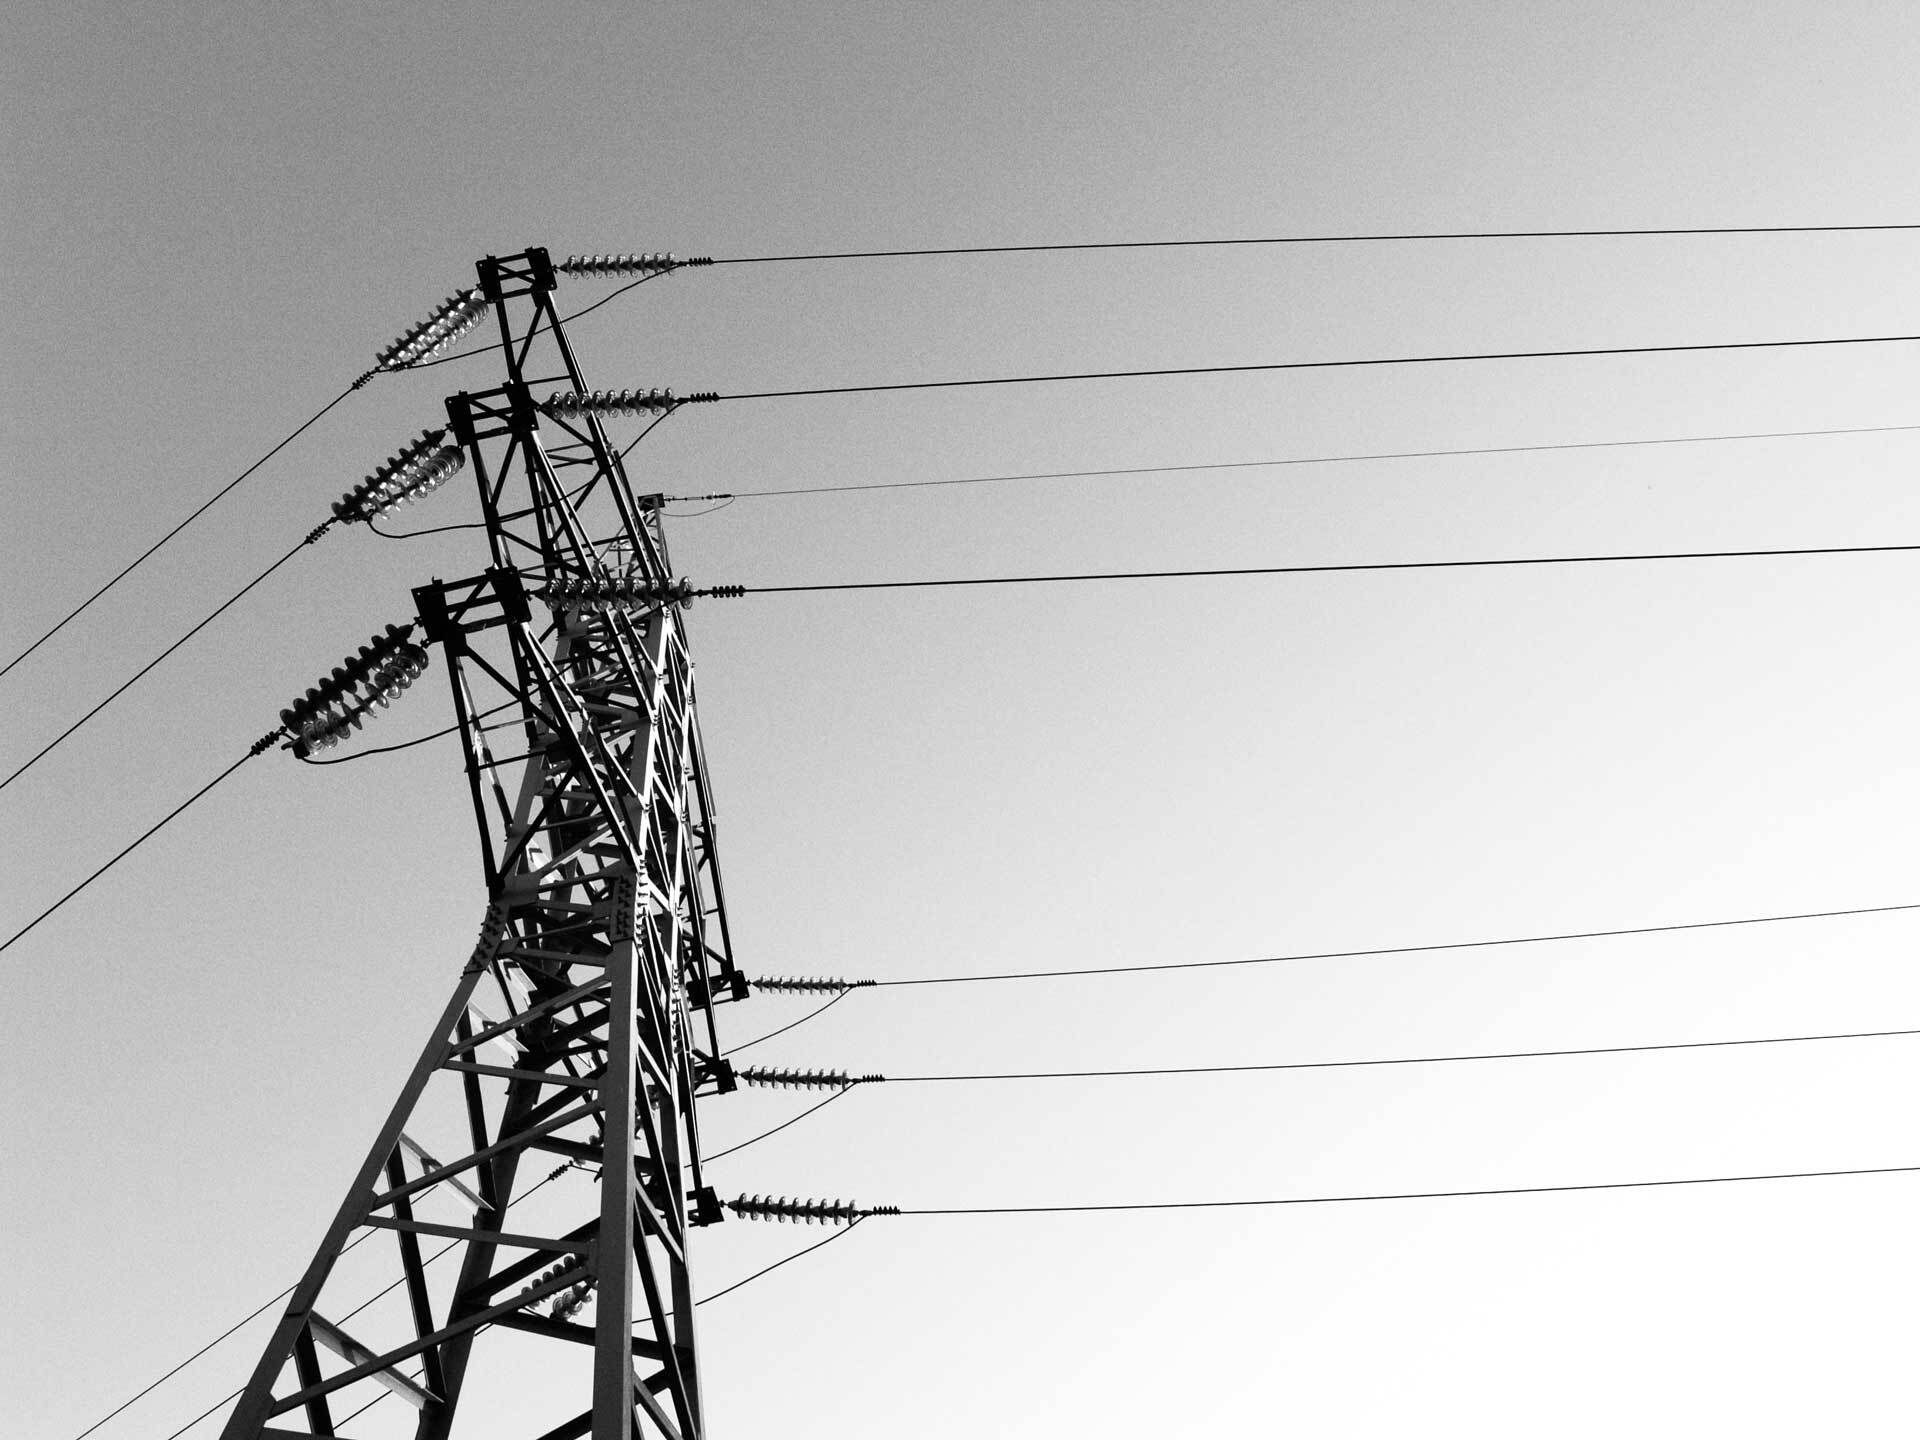 Abstract powerlines.